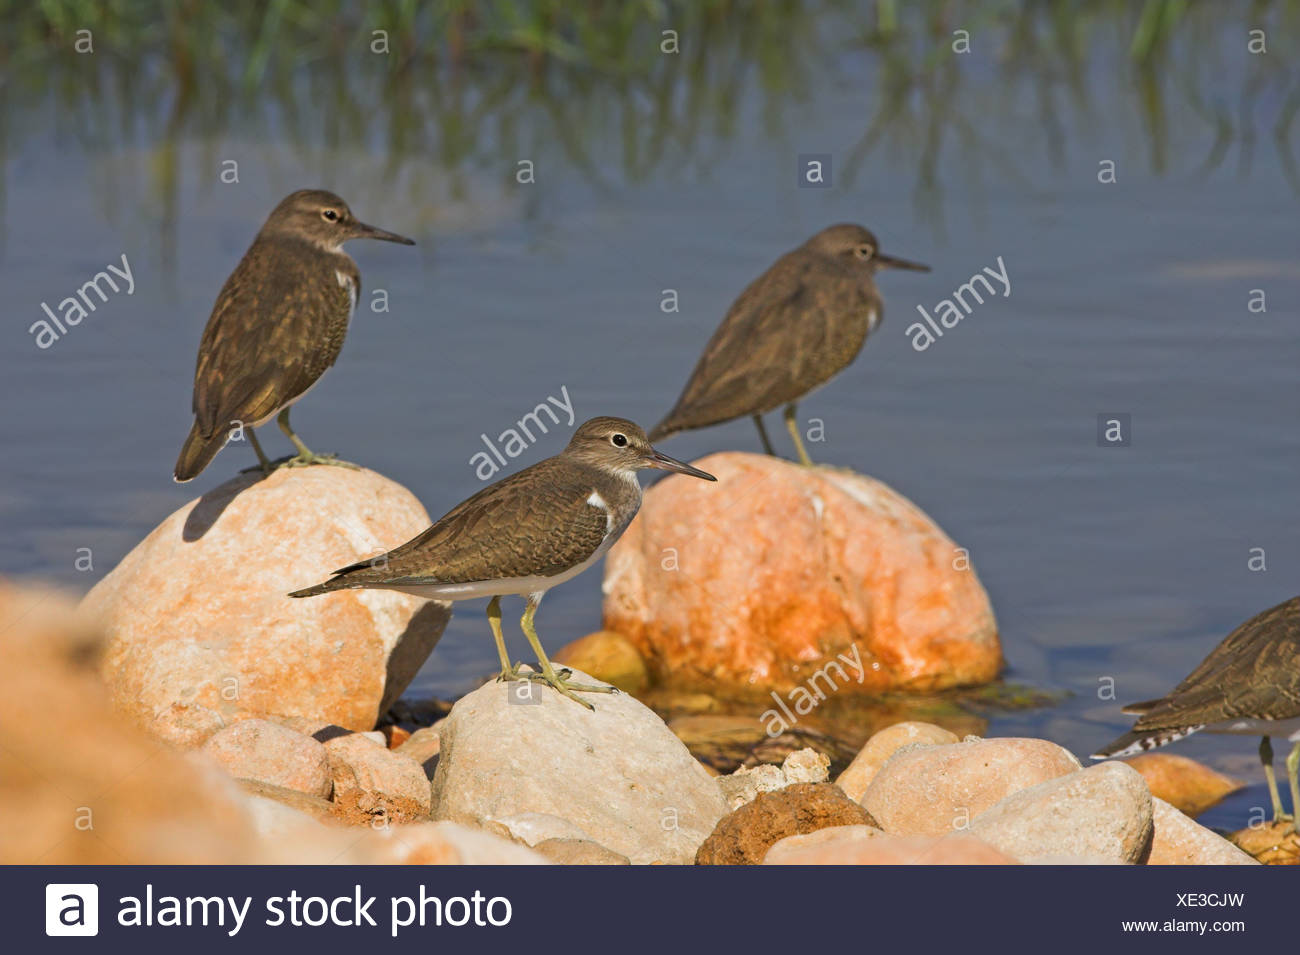 Common Sandpipers (Actitis hypoleucos) sitting on stones at a waterfront, side view - Stock Image